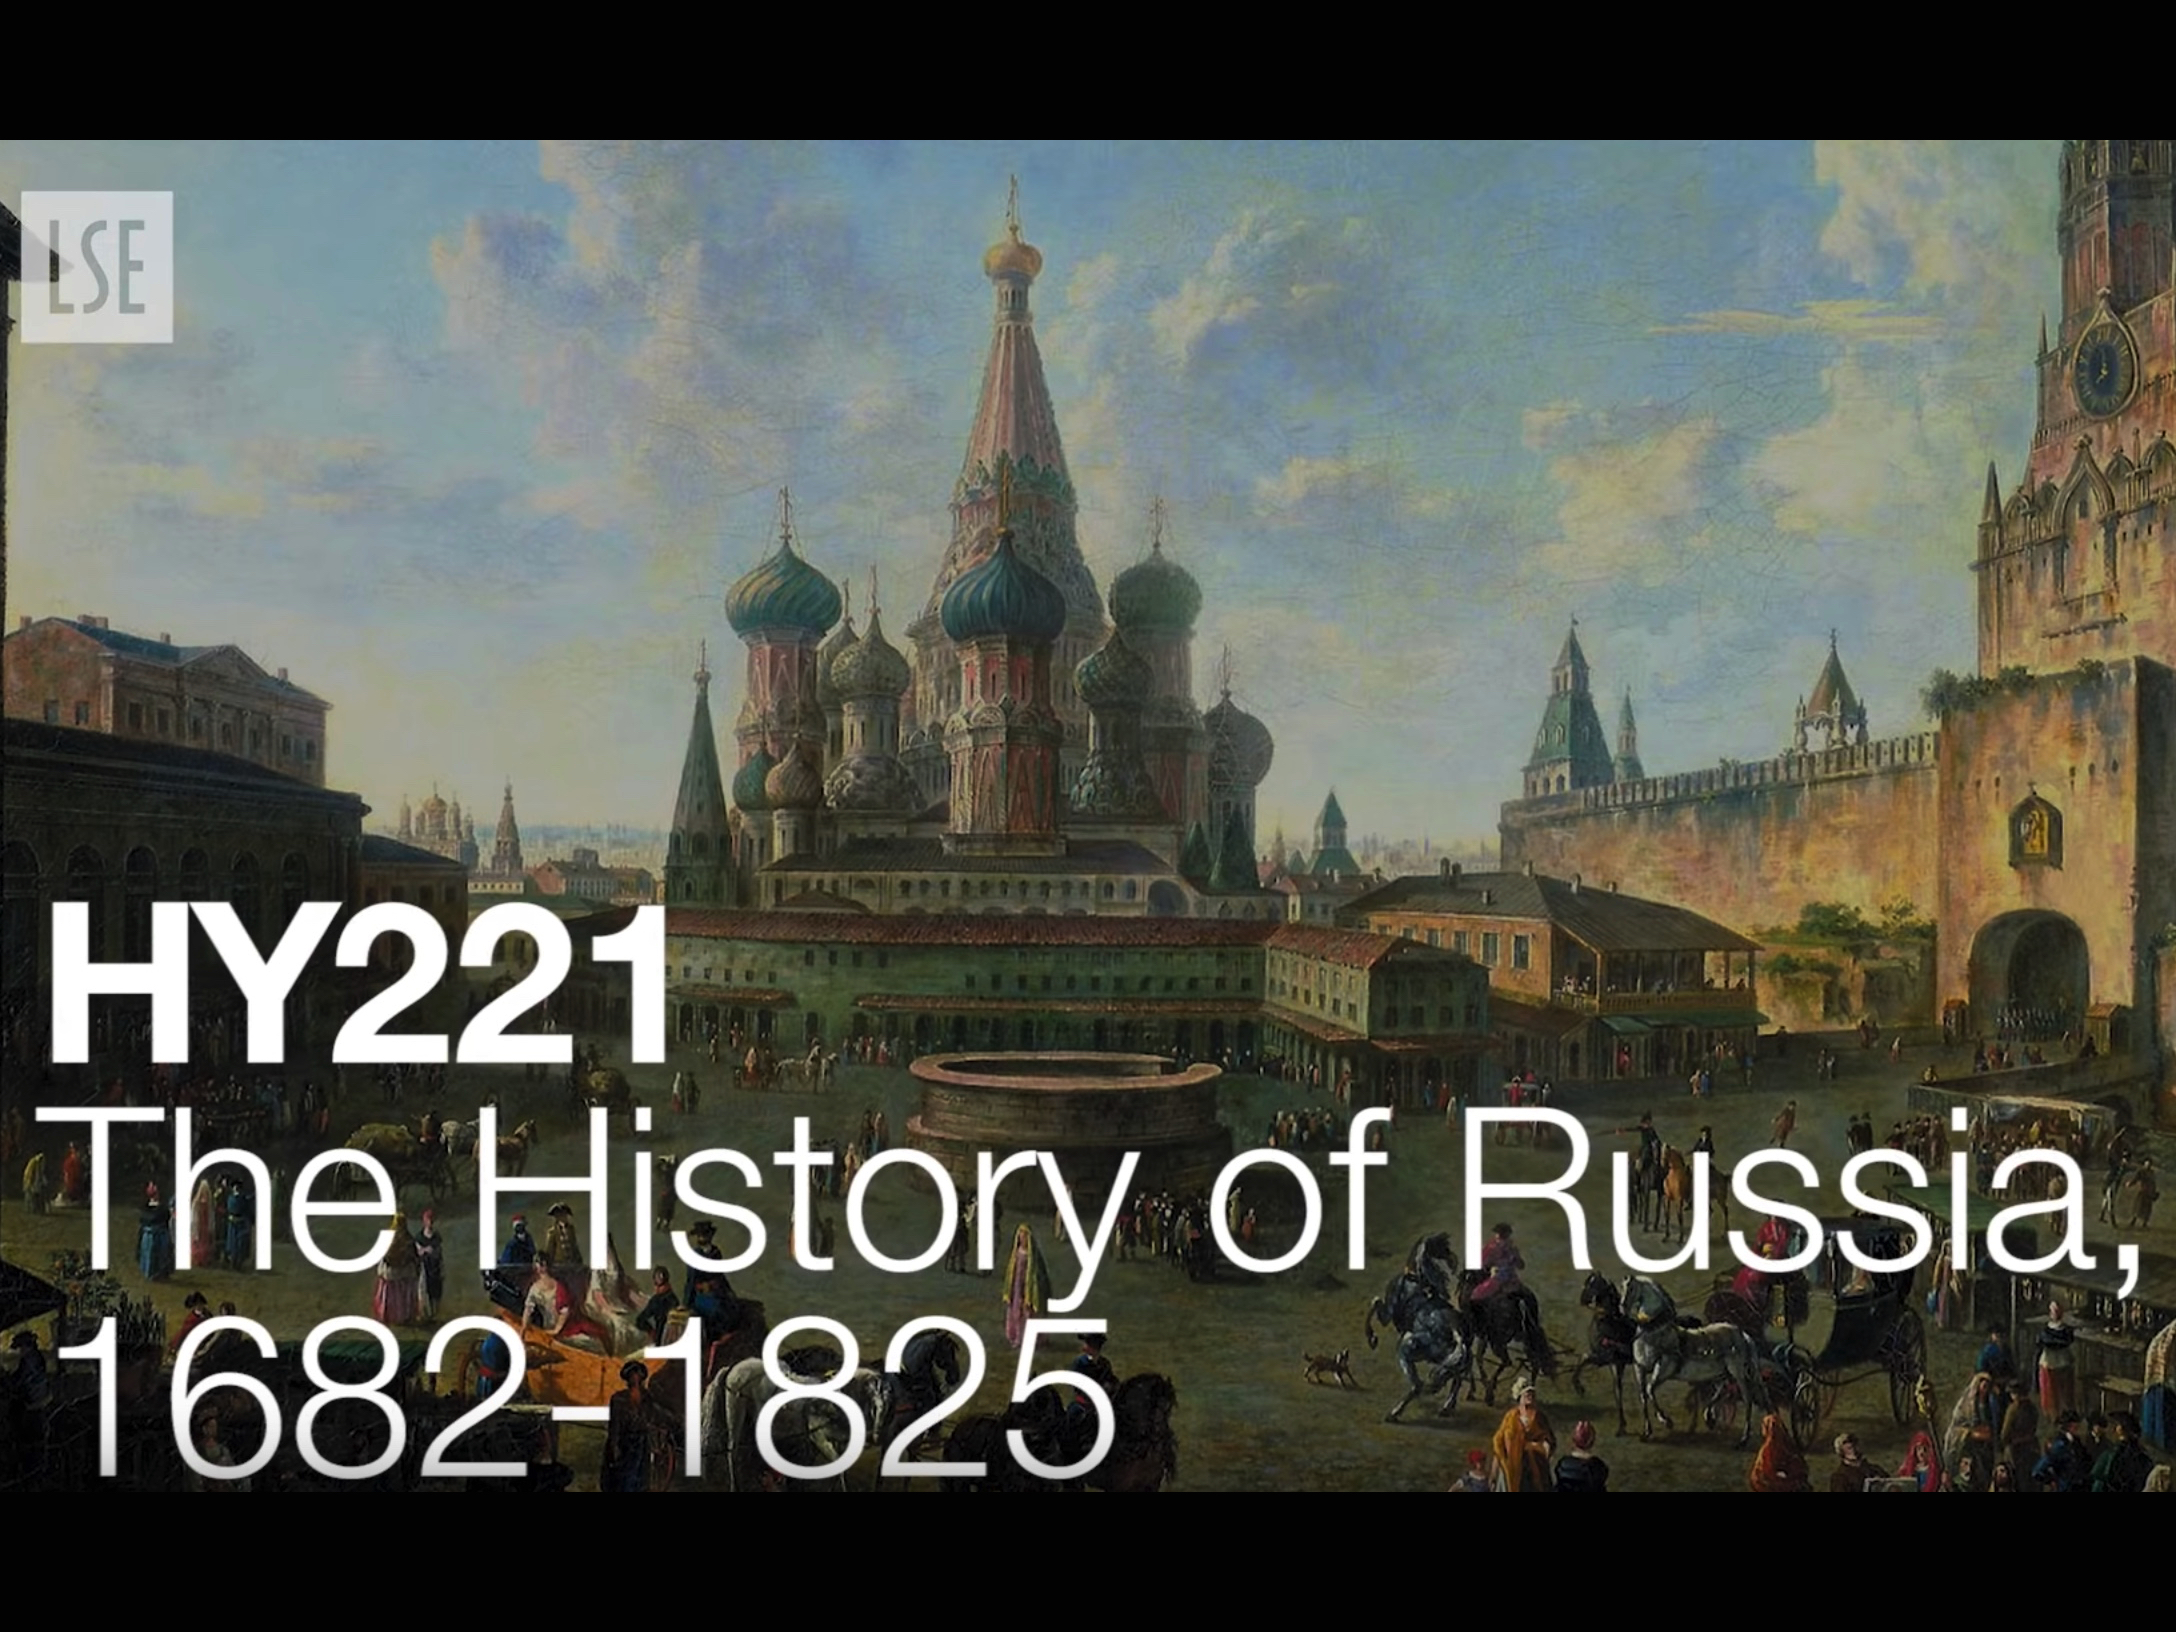 HY221: The History of Russia, 1682-1825